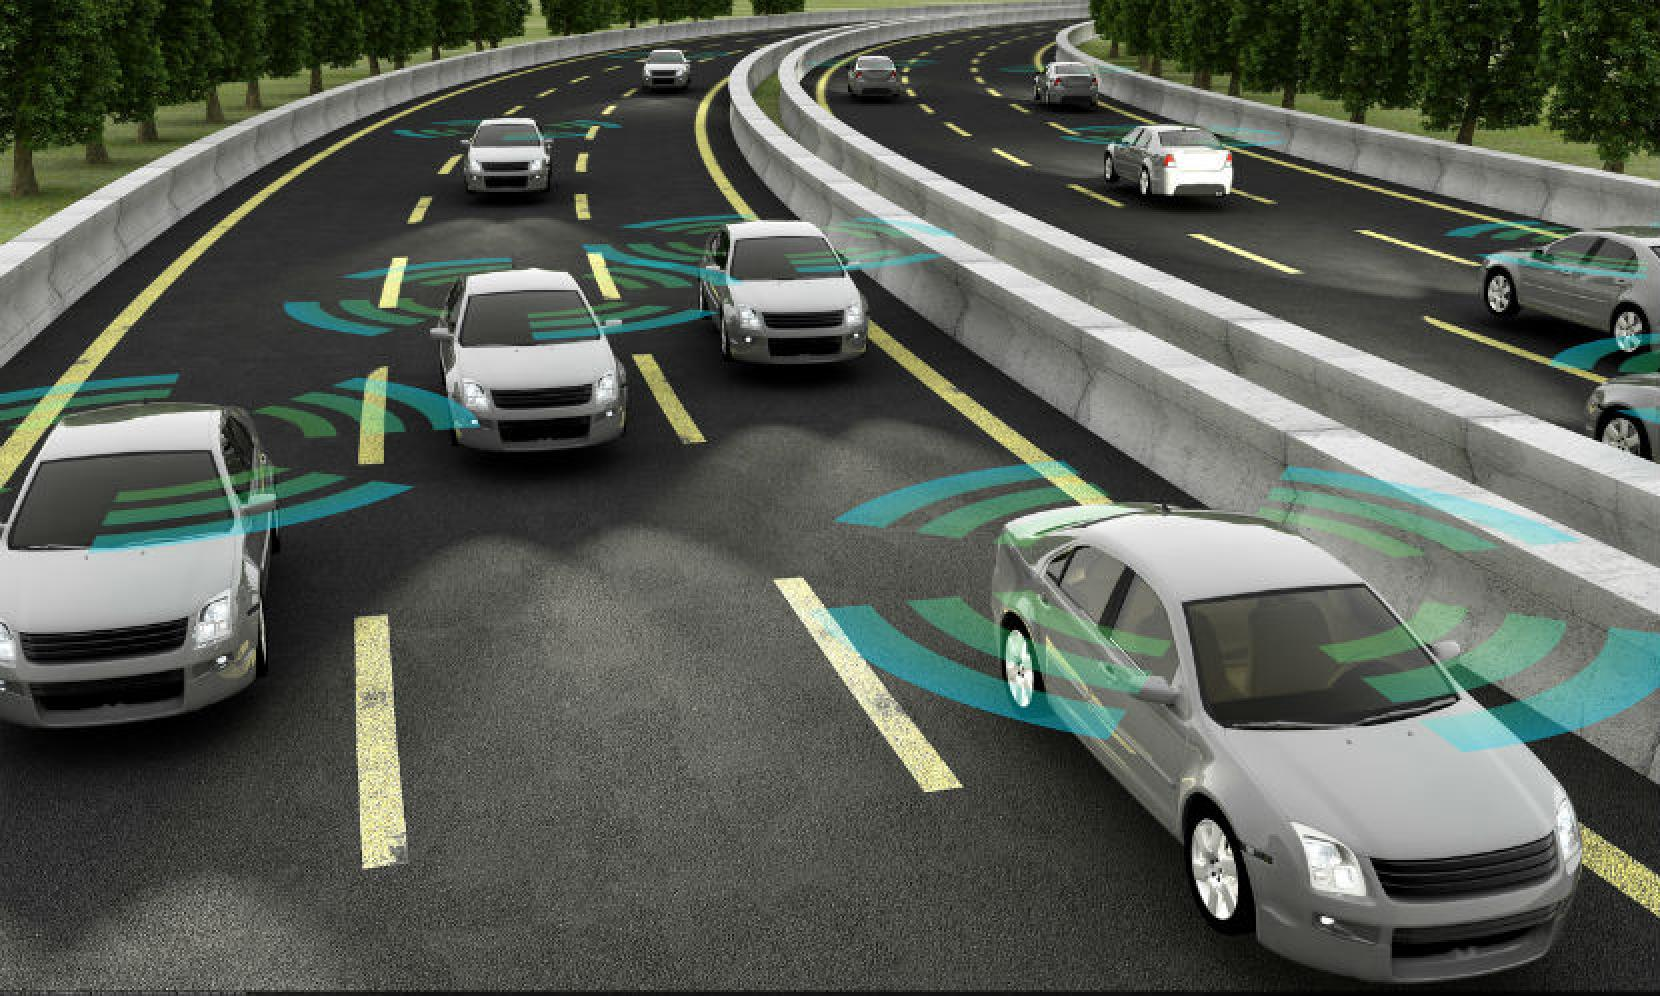 Israeli At 'Tip Of Speer' With Autonomous Vehicle Technology